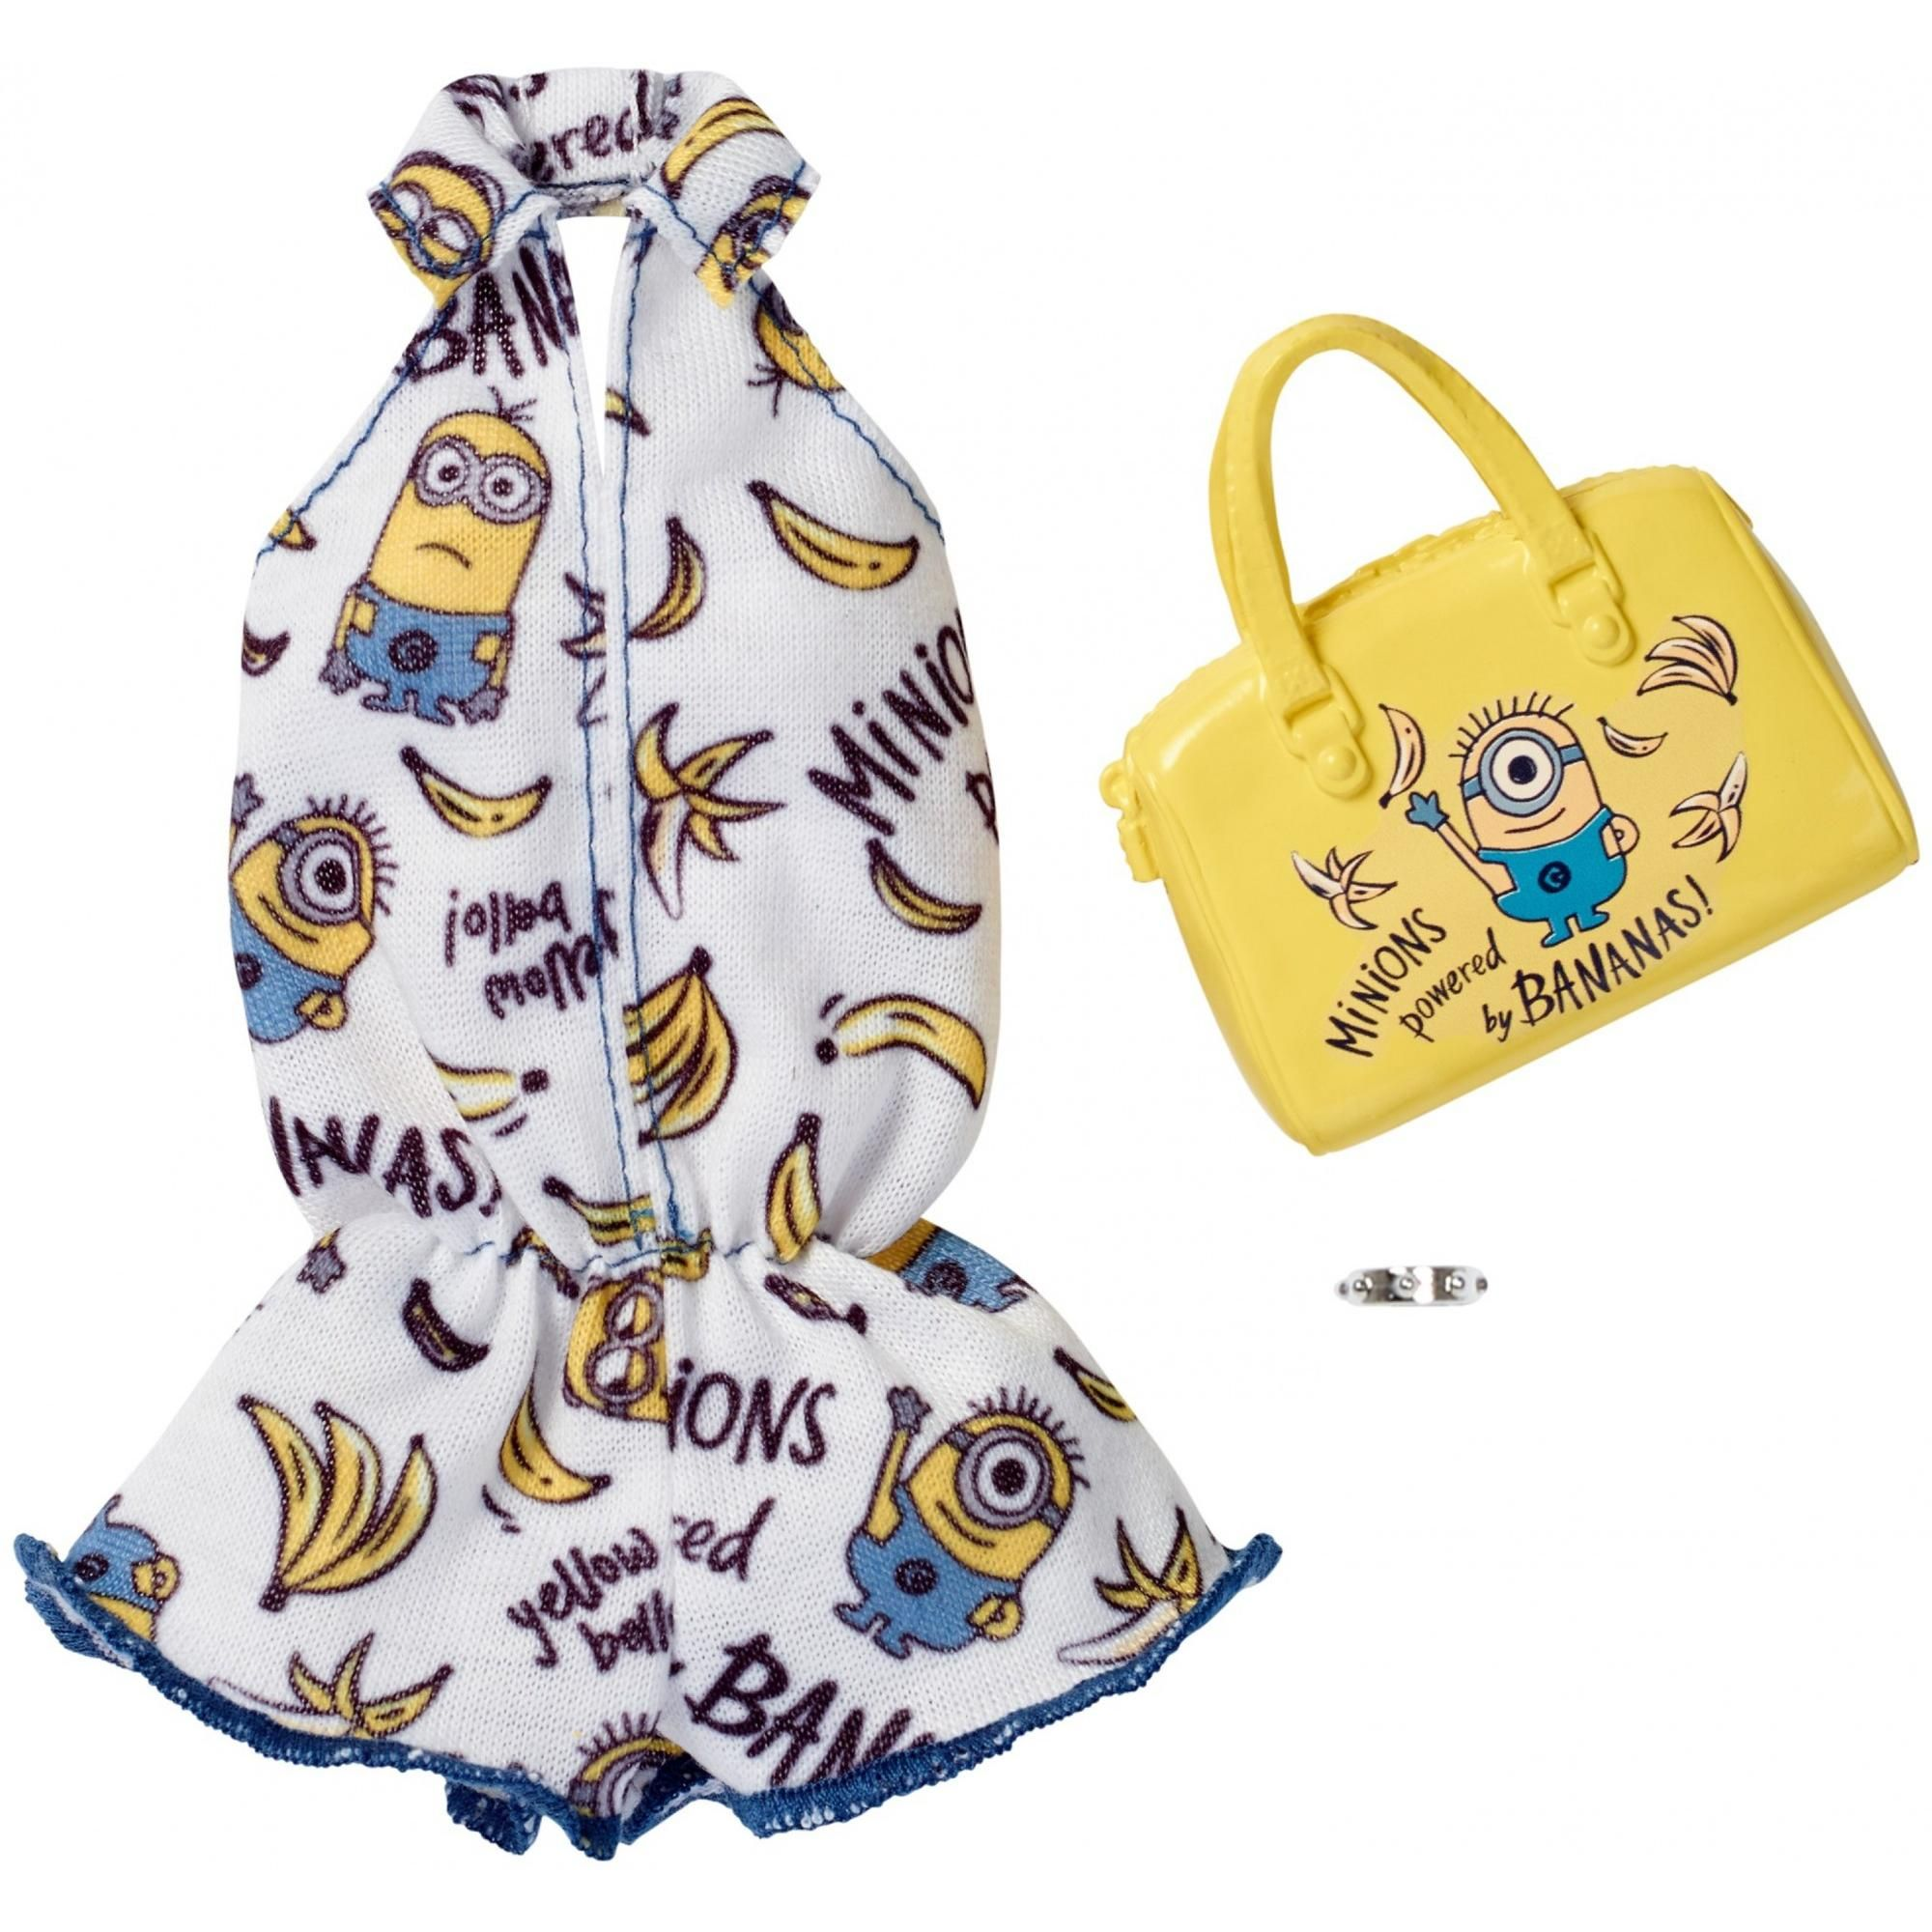 Free 2day shipping. Buy Barbie Despicable Me Blue Banana